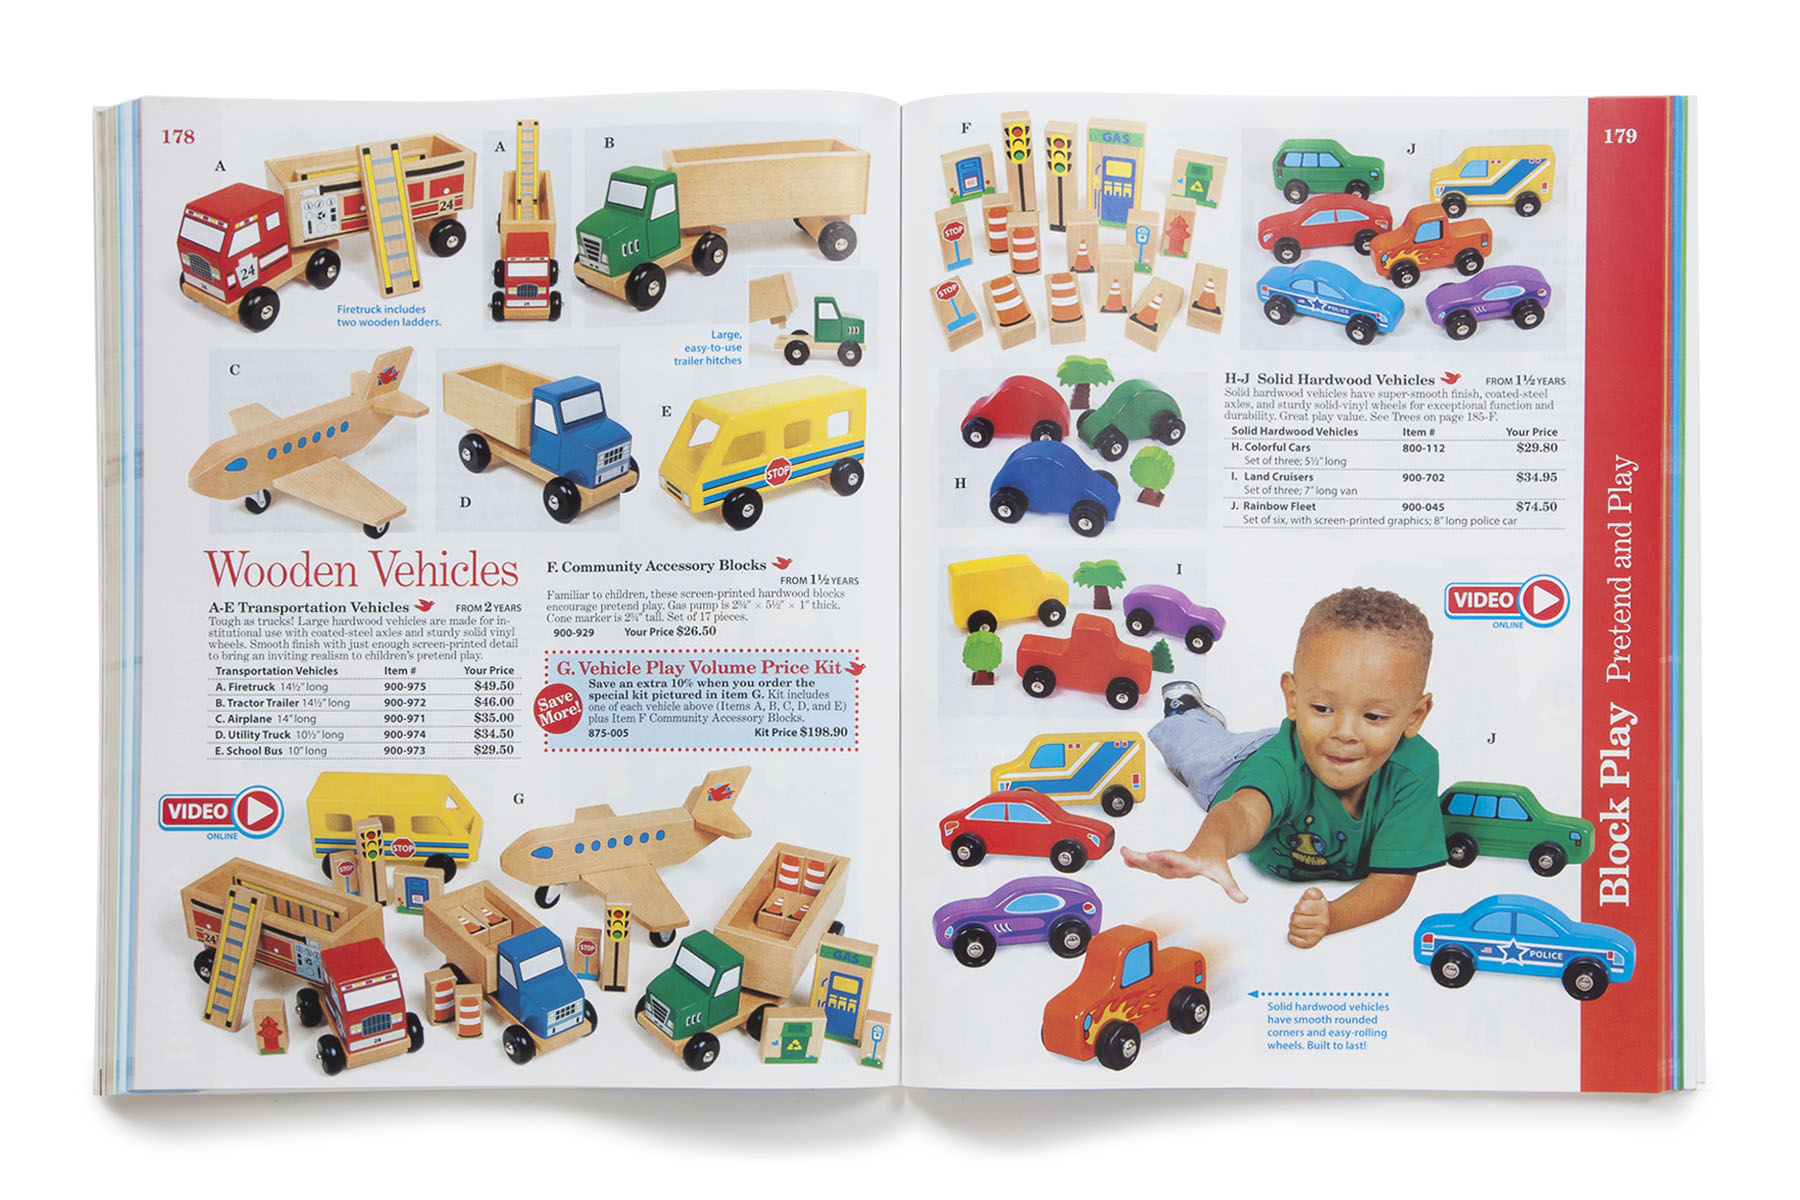 Block Play section spread